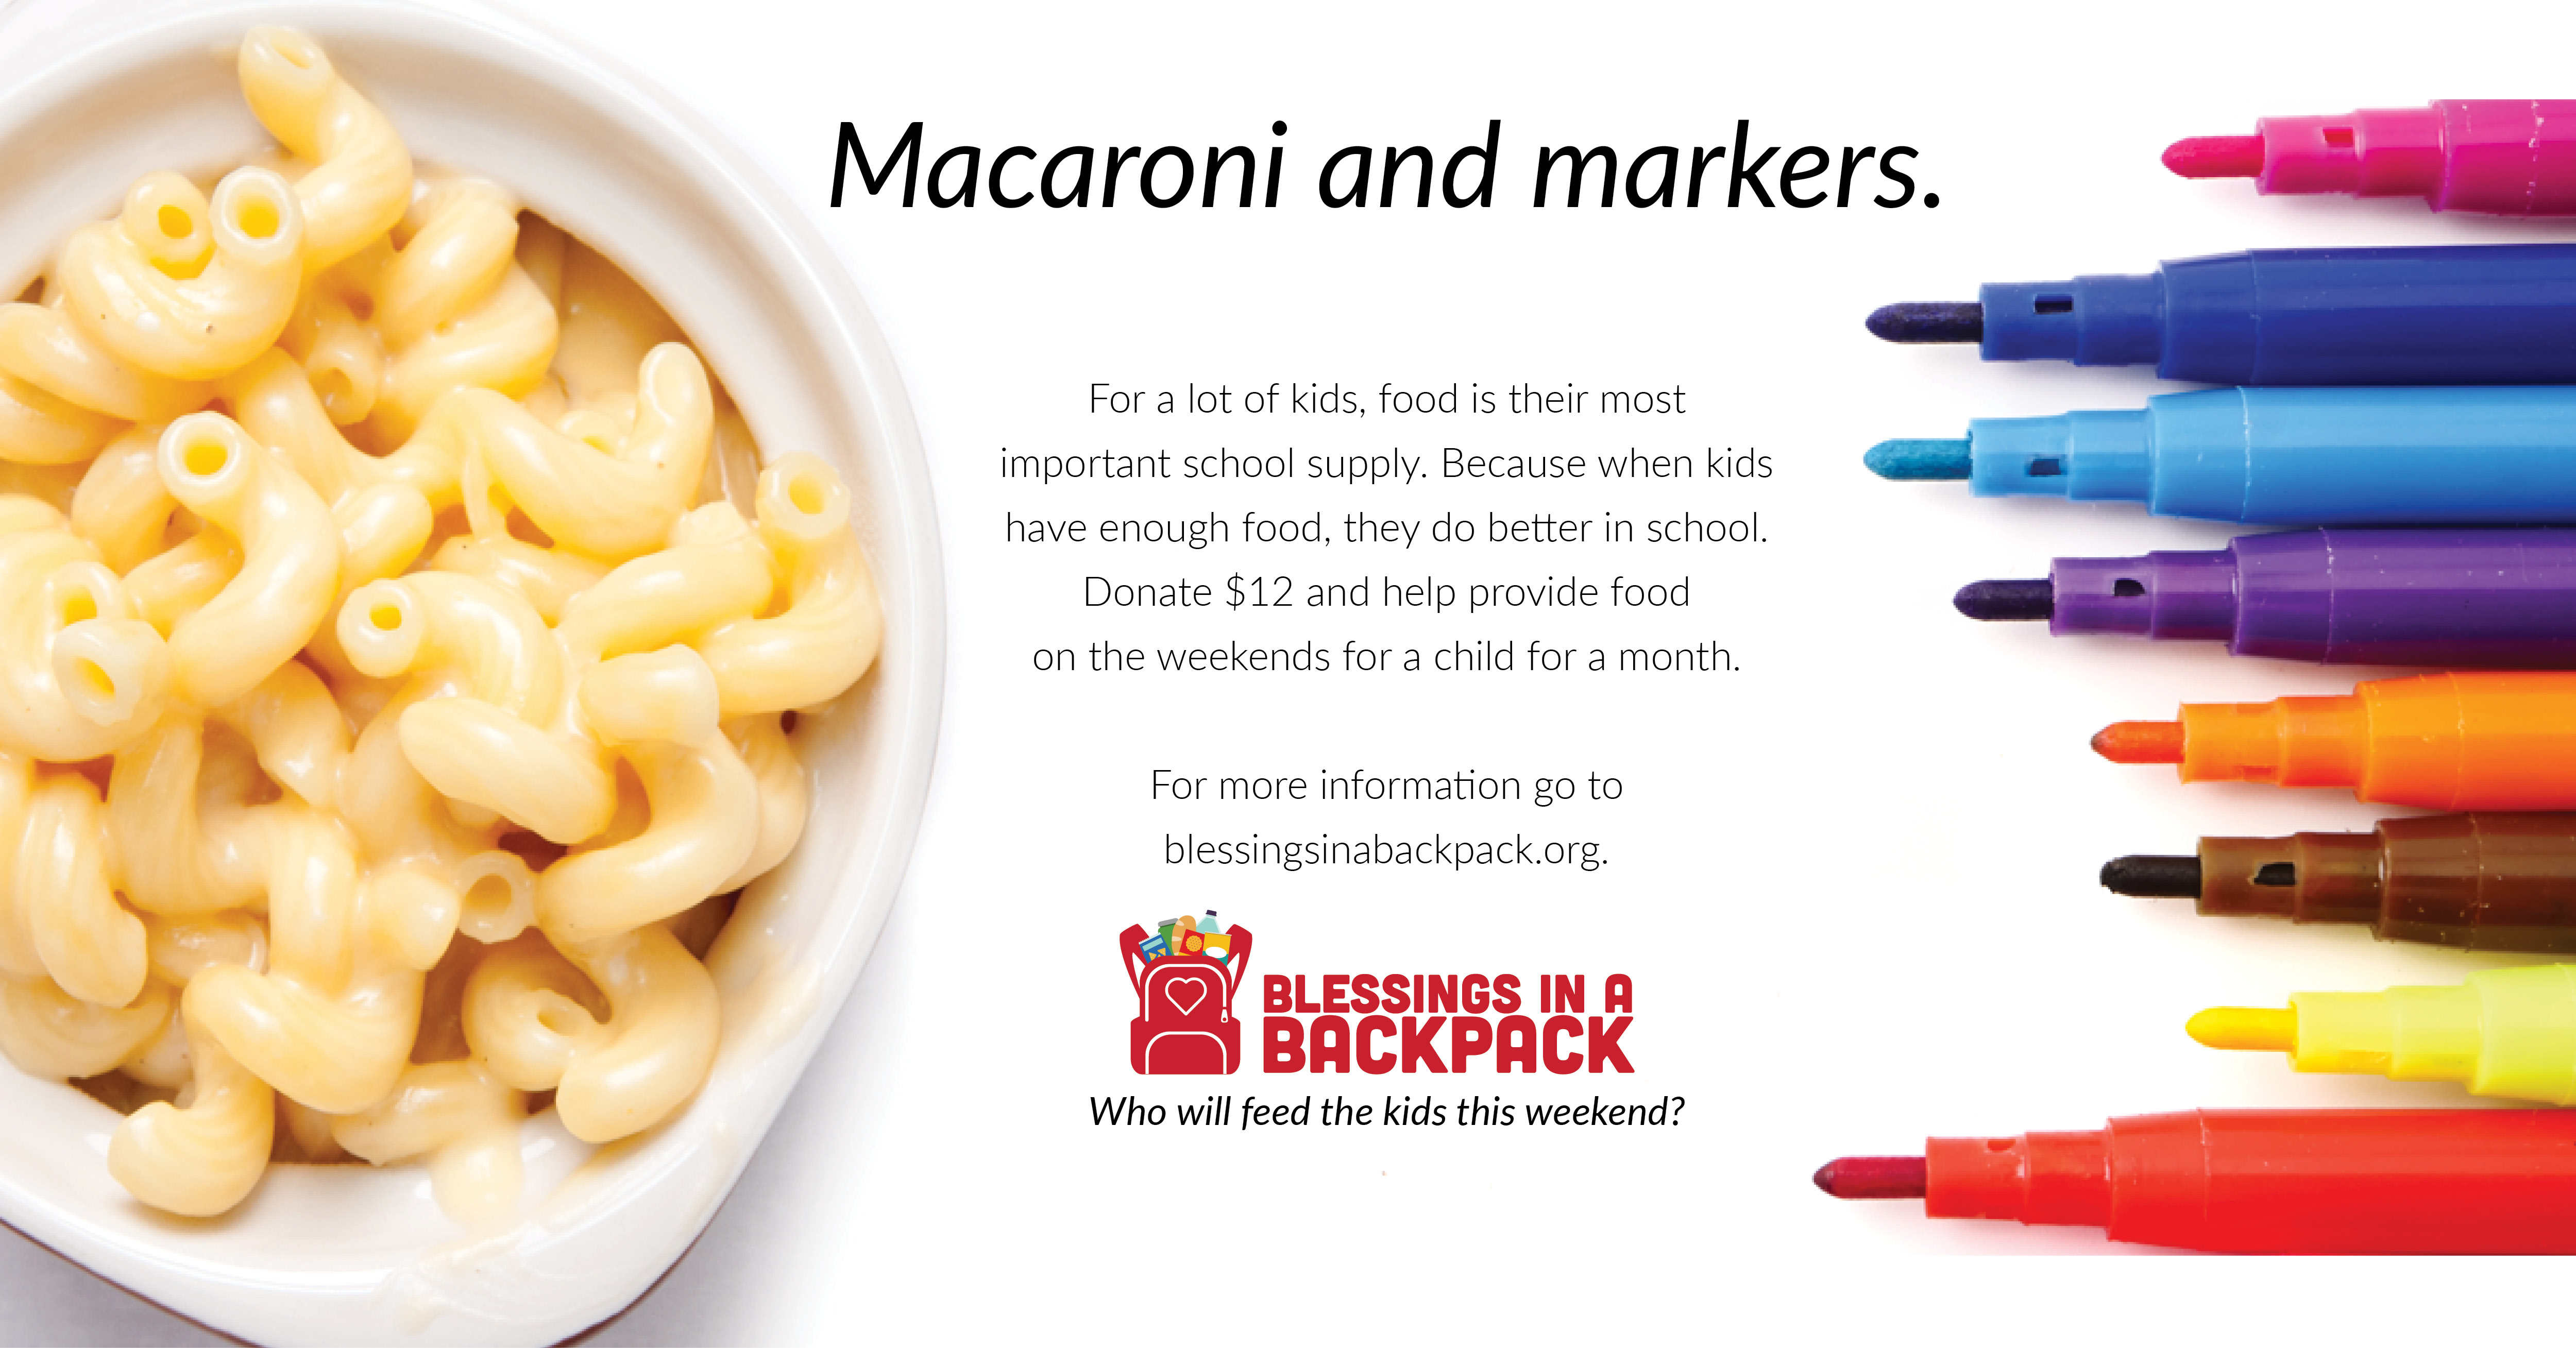 Macaroni and Markers